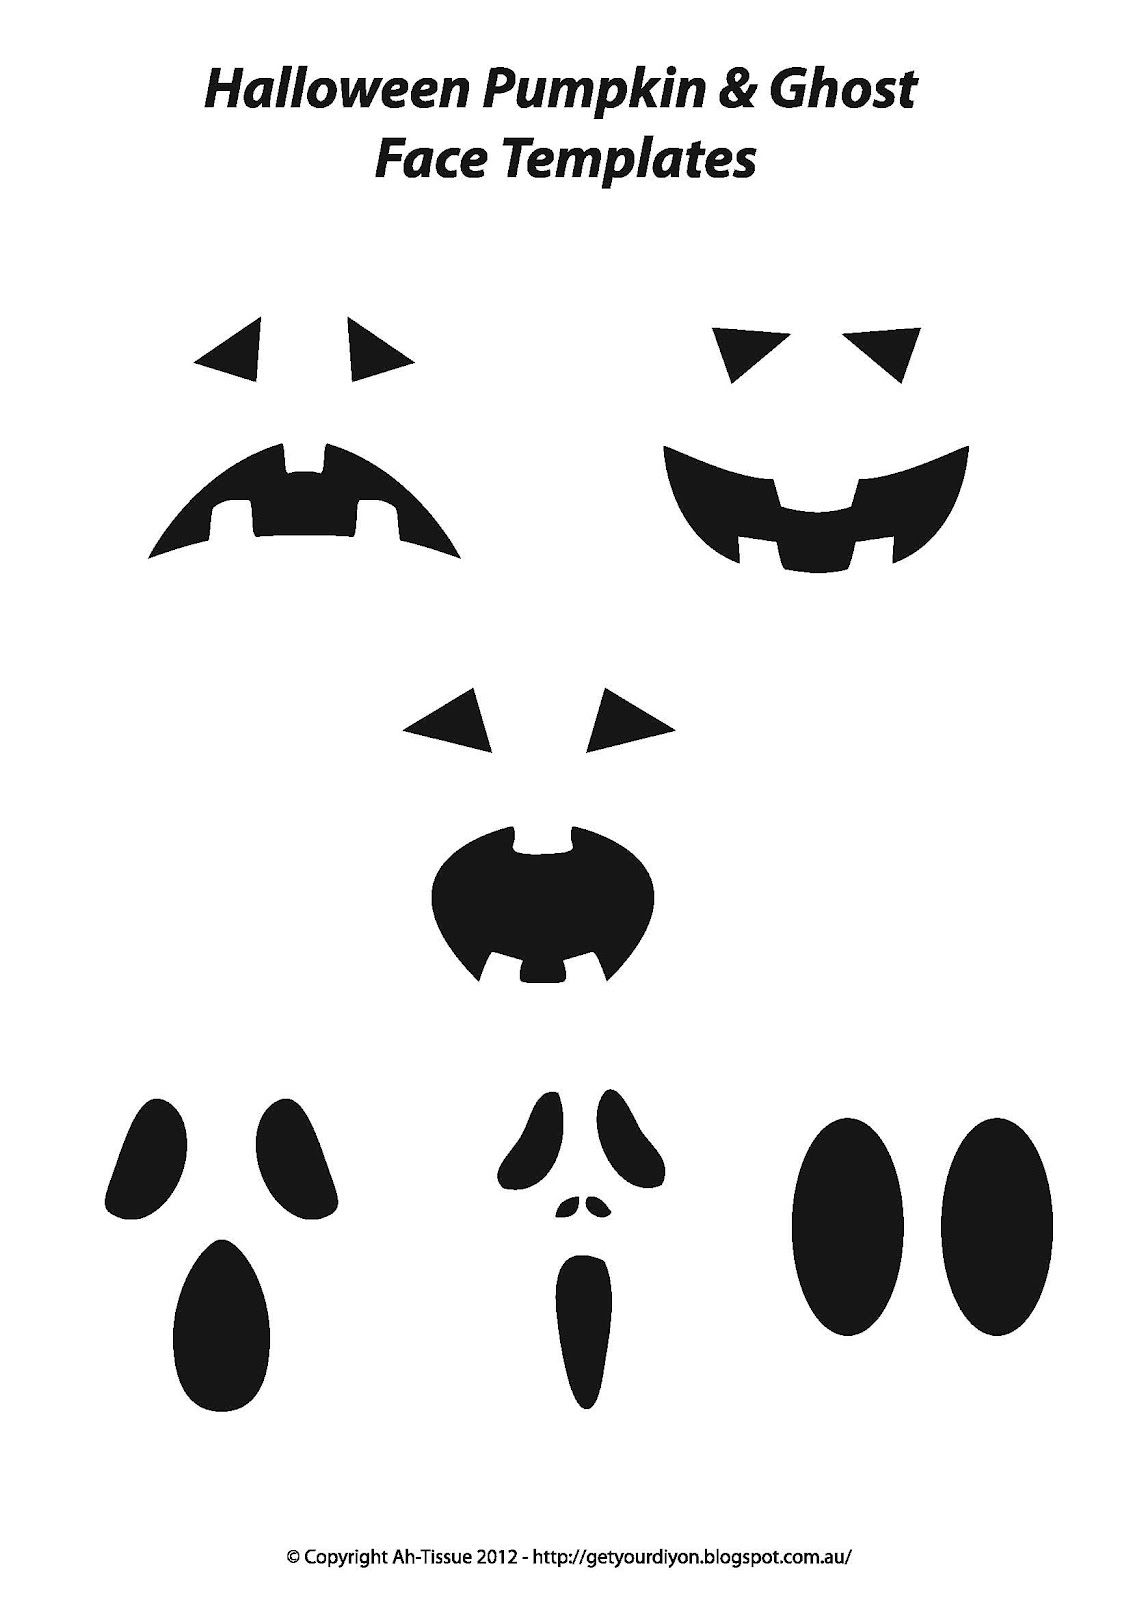 5 best images of ghost face template printable cute ghost face templates happy ghost face template printable and halloween ghost faces stencils - Halloween Ghost Printables